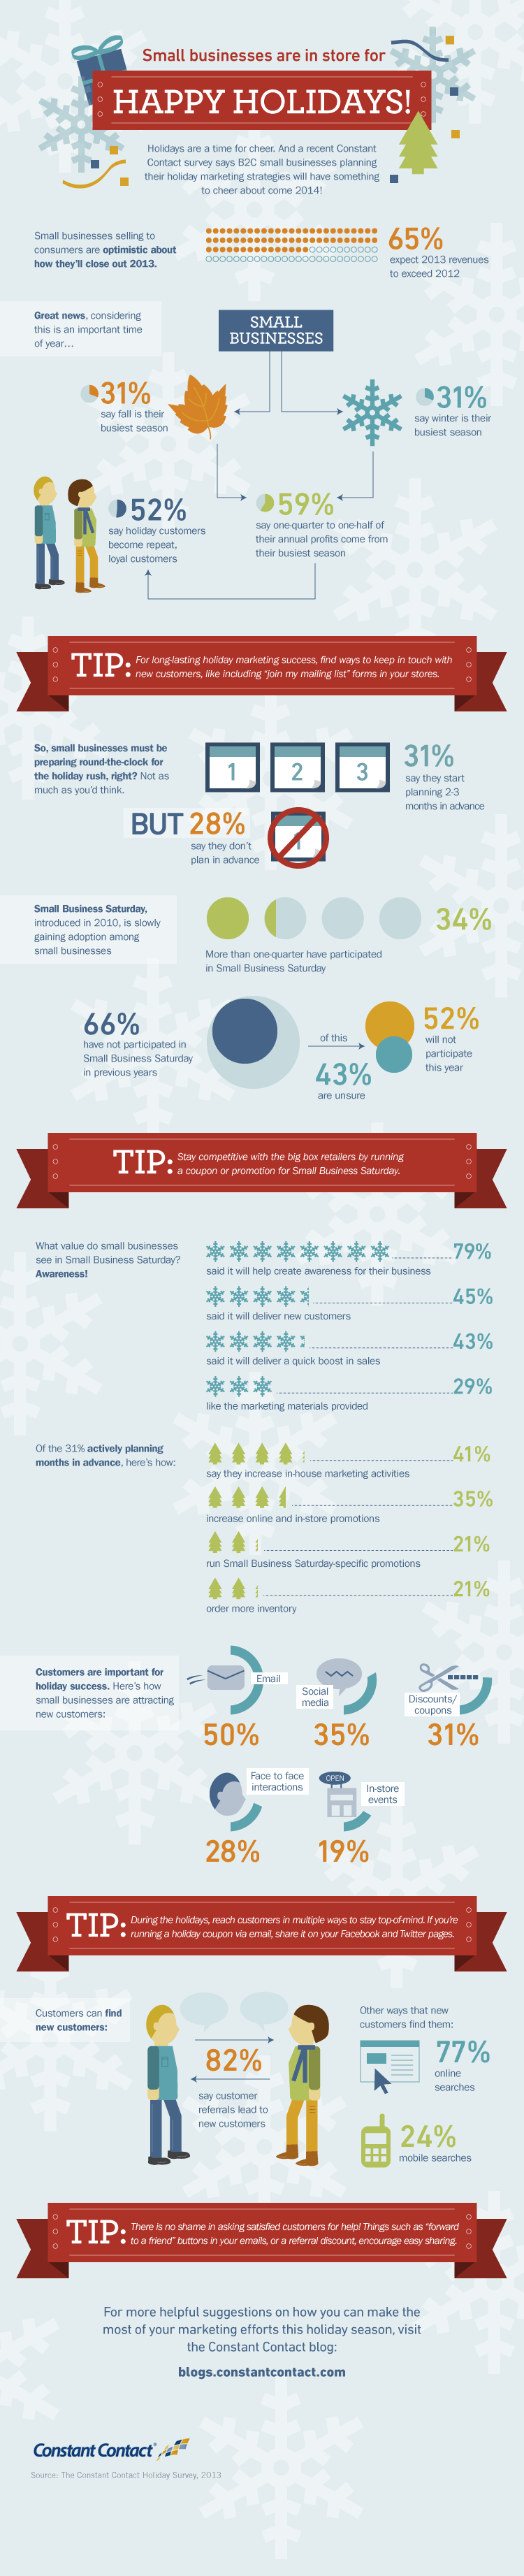 Small Businesses Are In Store For Happy Holidays! image SBS Infographic FINAL